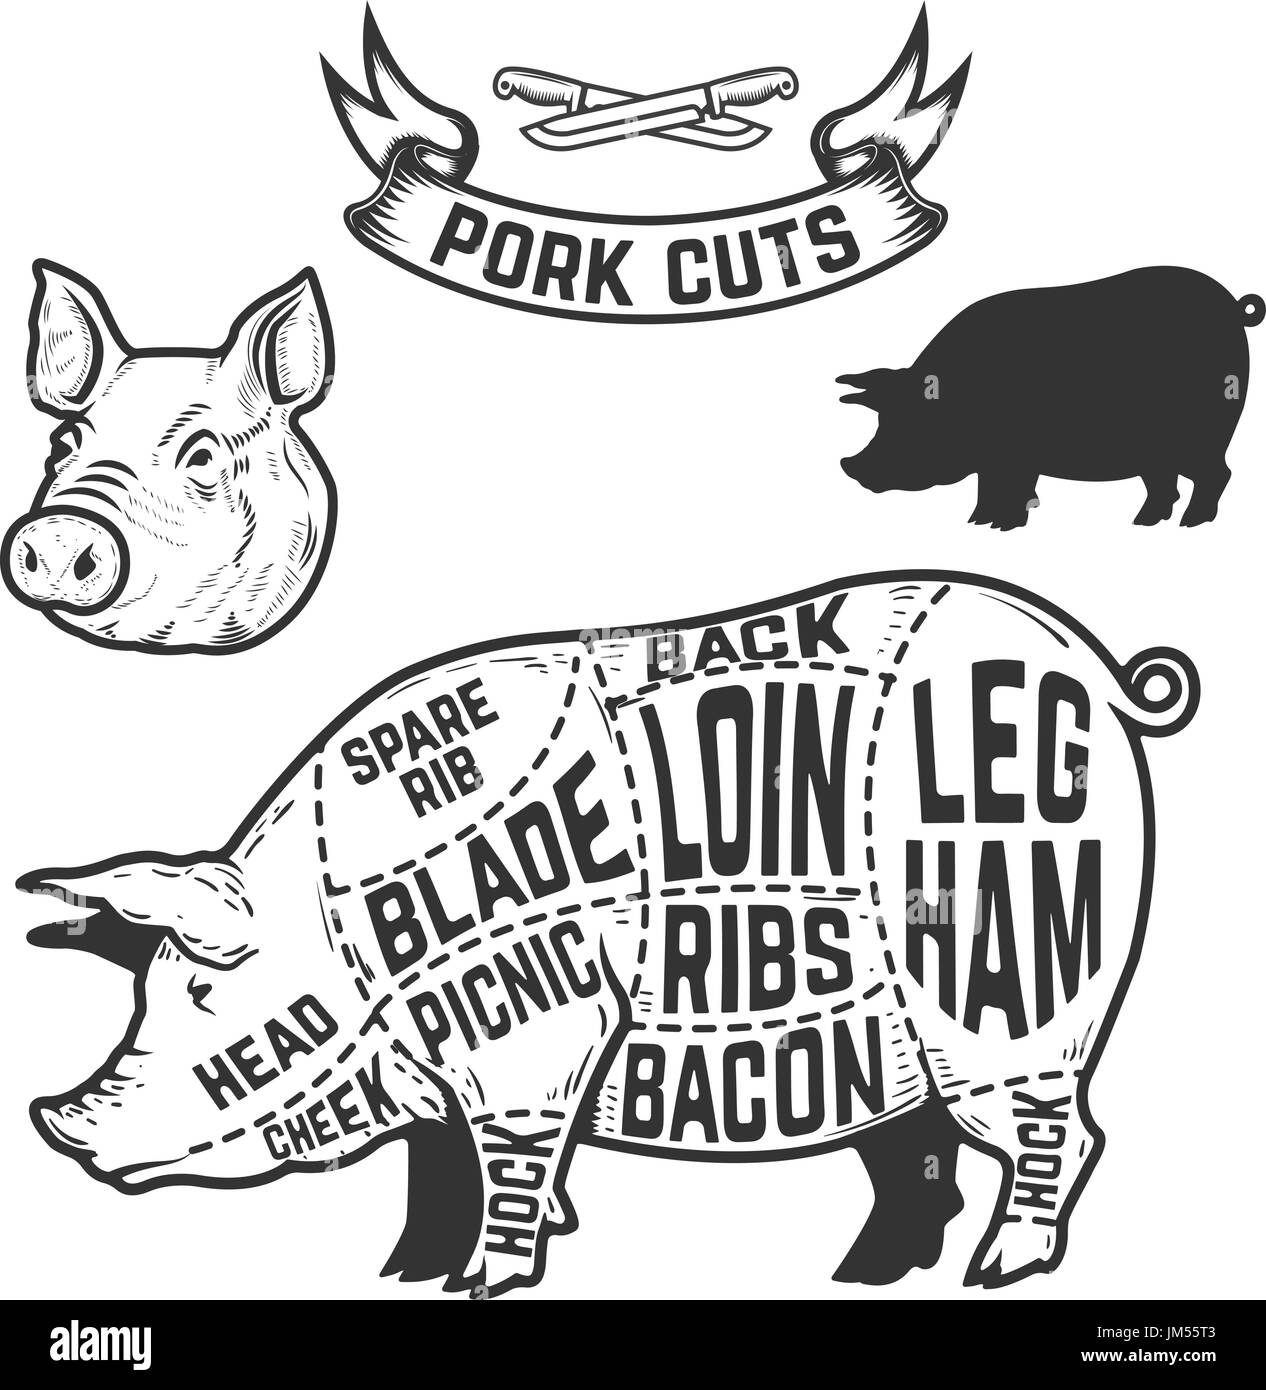 Cuts Of Beef Diagram Stock Photos Chicken Vector Pork Butcher Design Element For Poster Menu Illustration